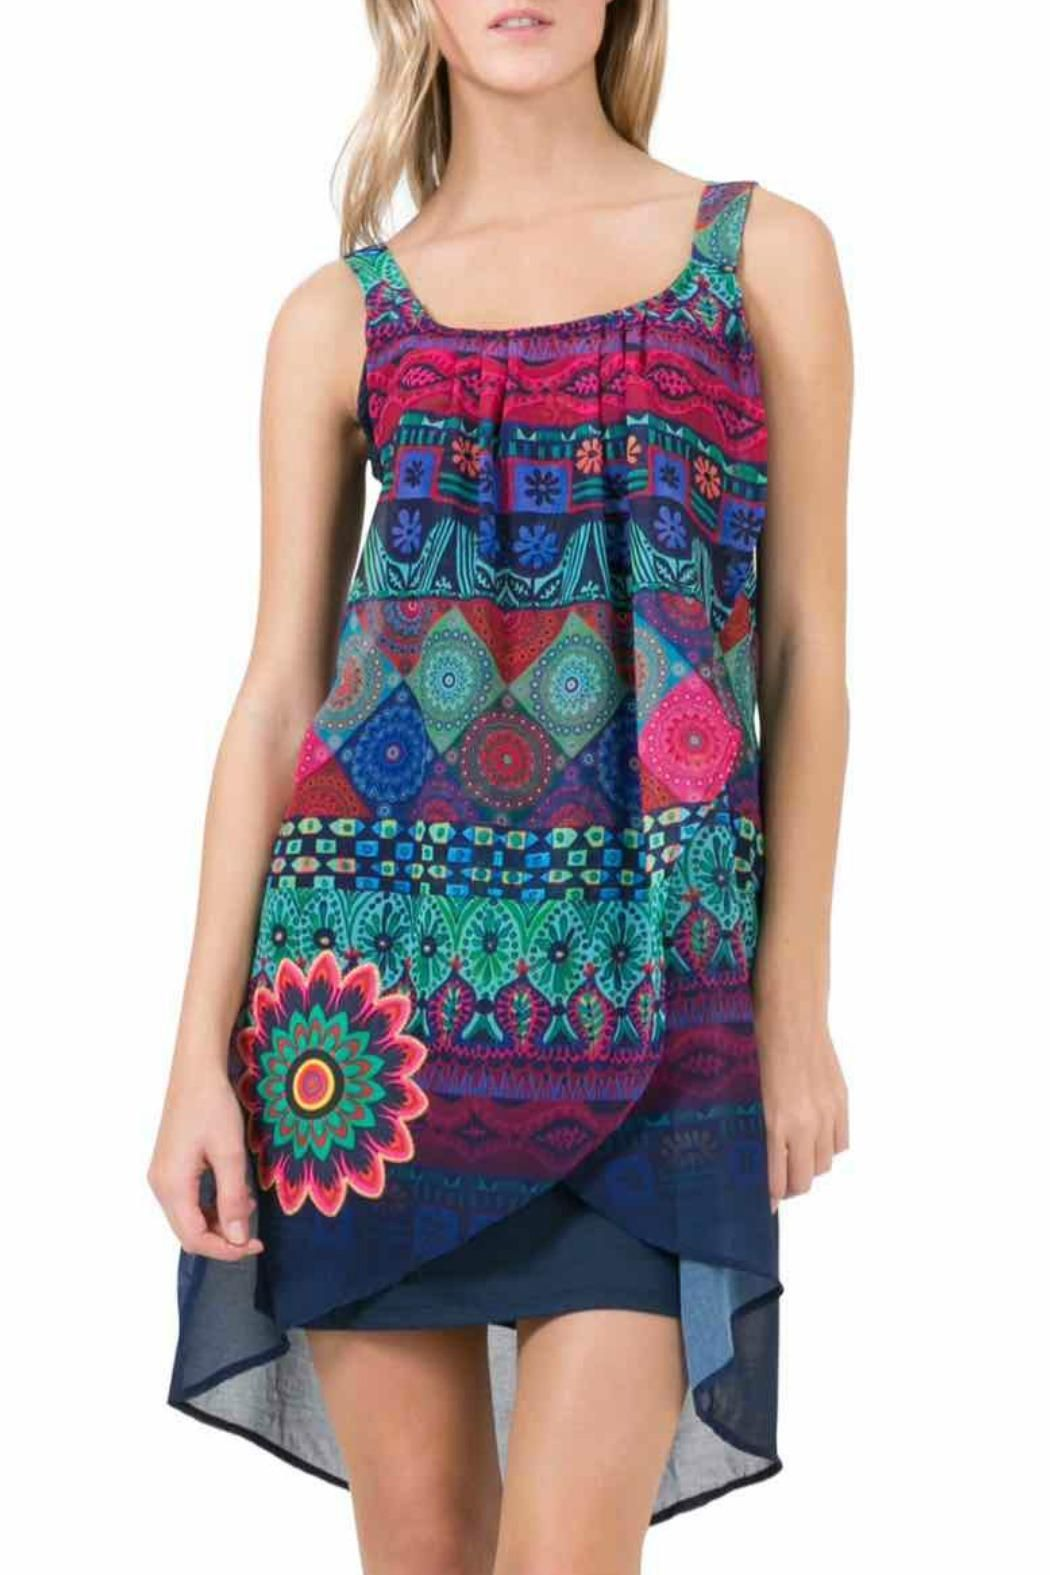 869dd2c11774 Fun sleeveless blue dress with a crossover layer of printed chiffon. A  great spring